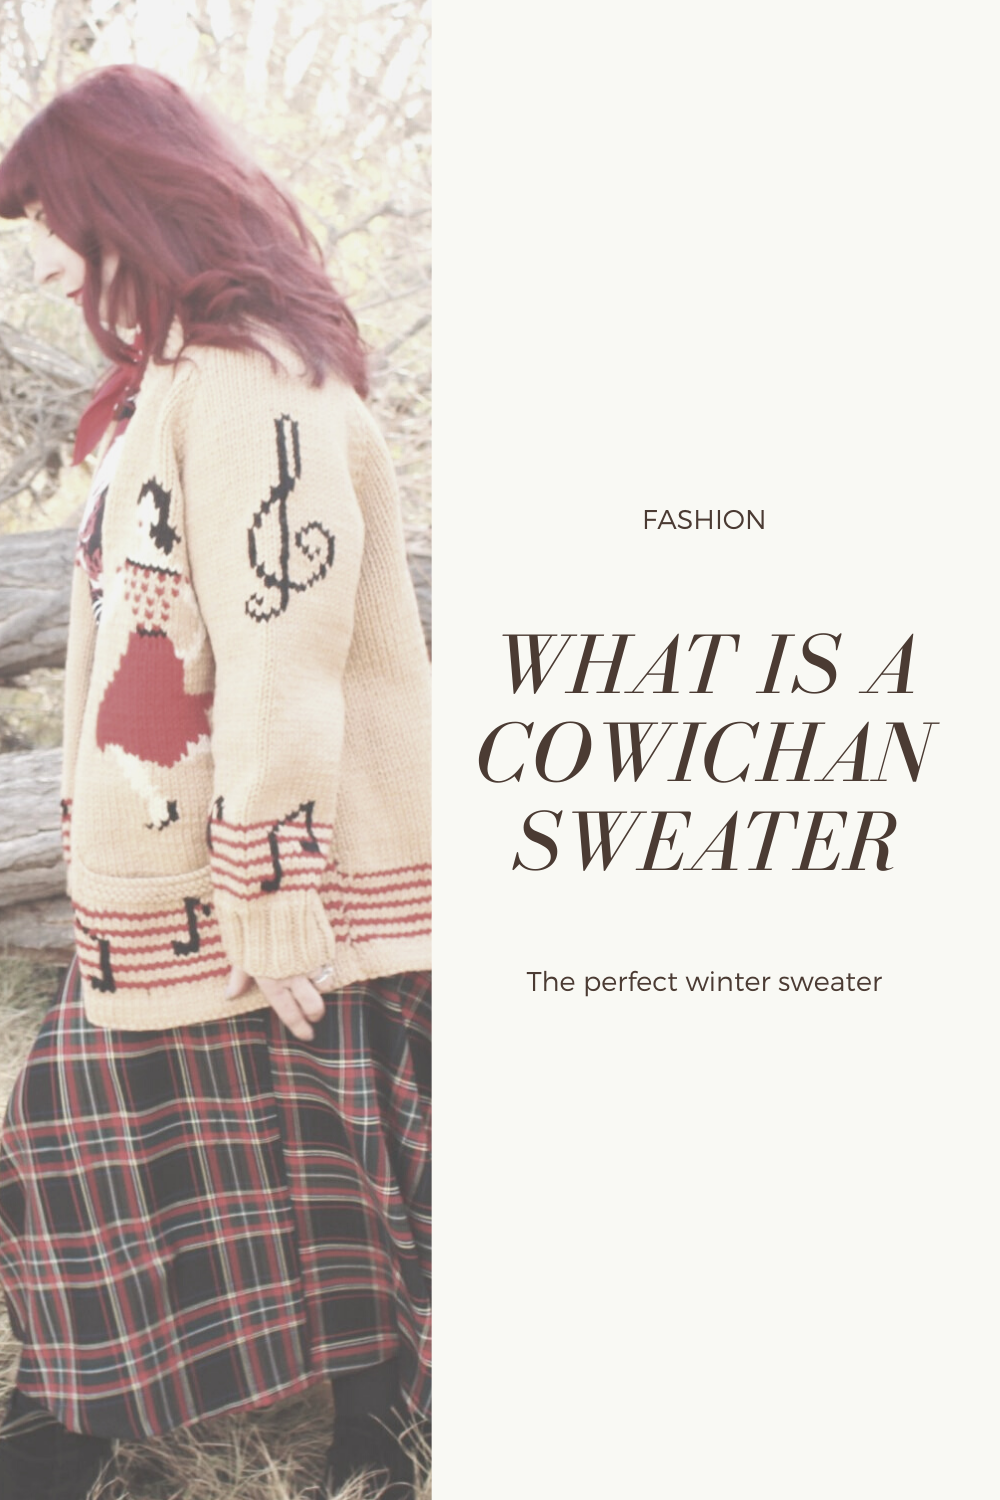 What is a cowichan sweater